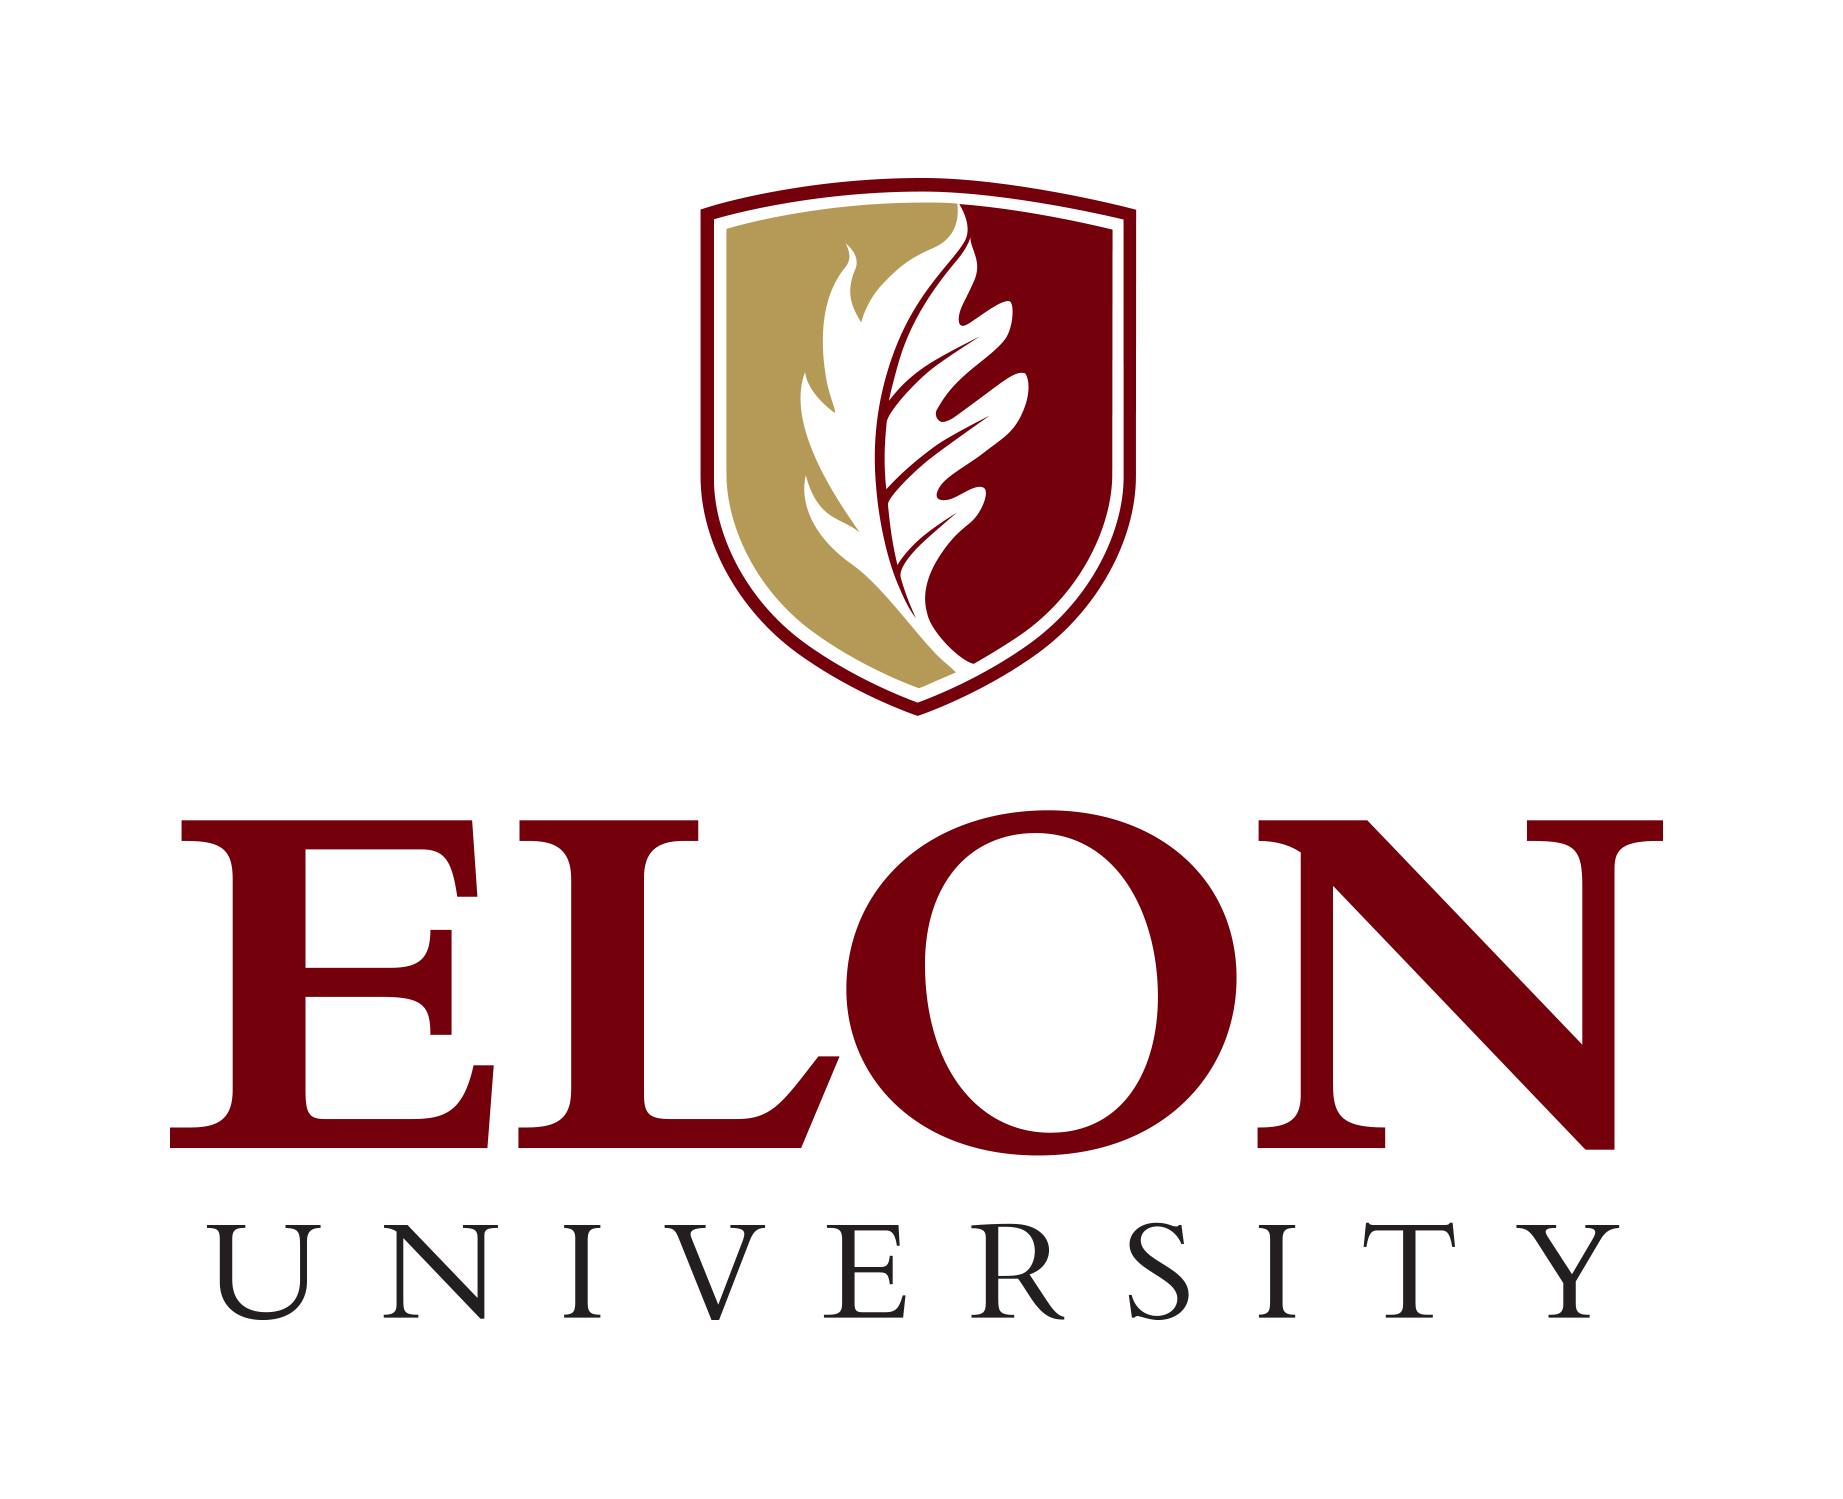 elon-signature-primary-centered-maroon-gold-blk-rgb-300dpi.png